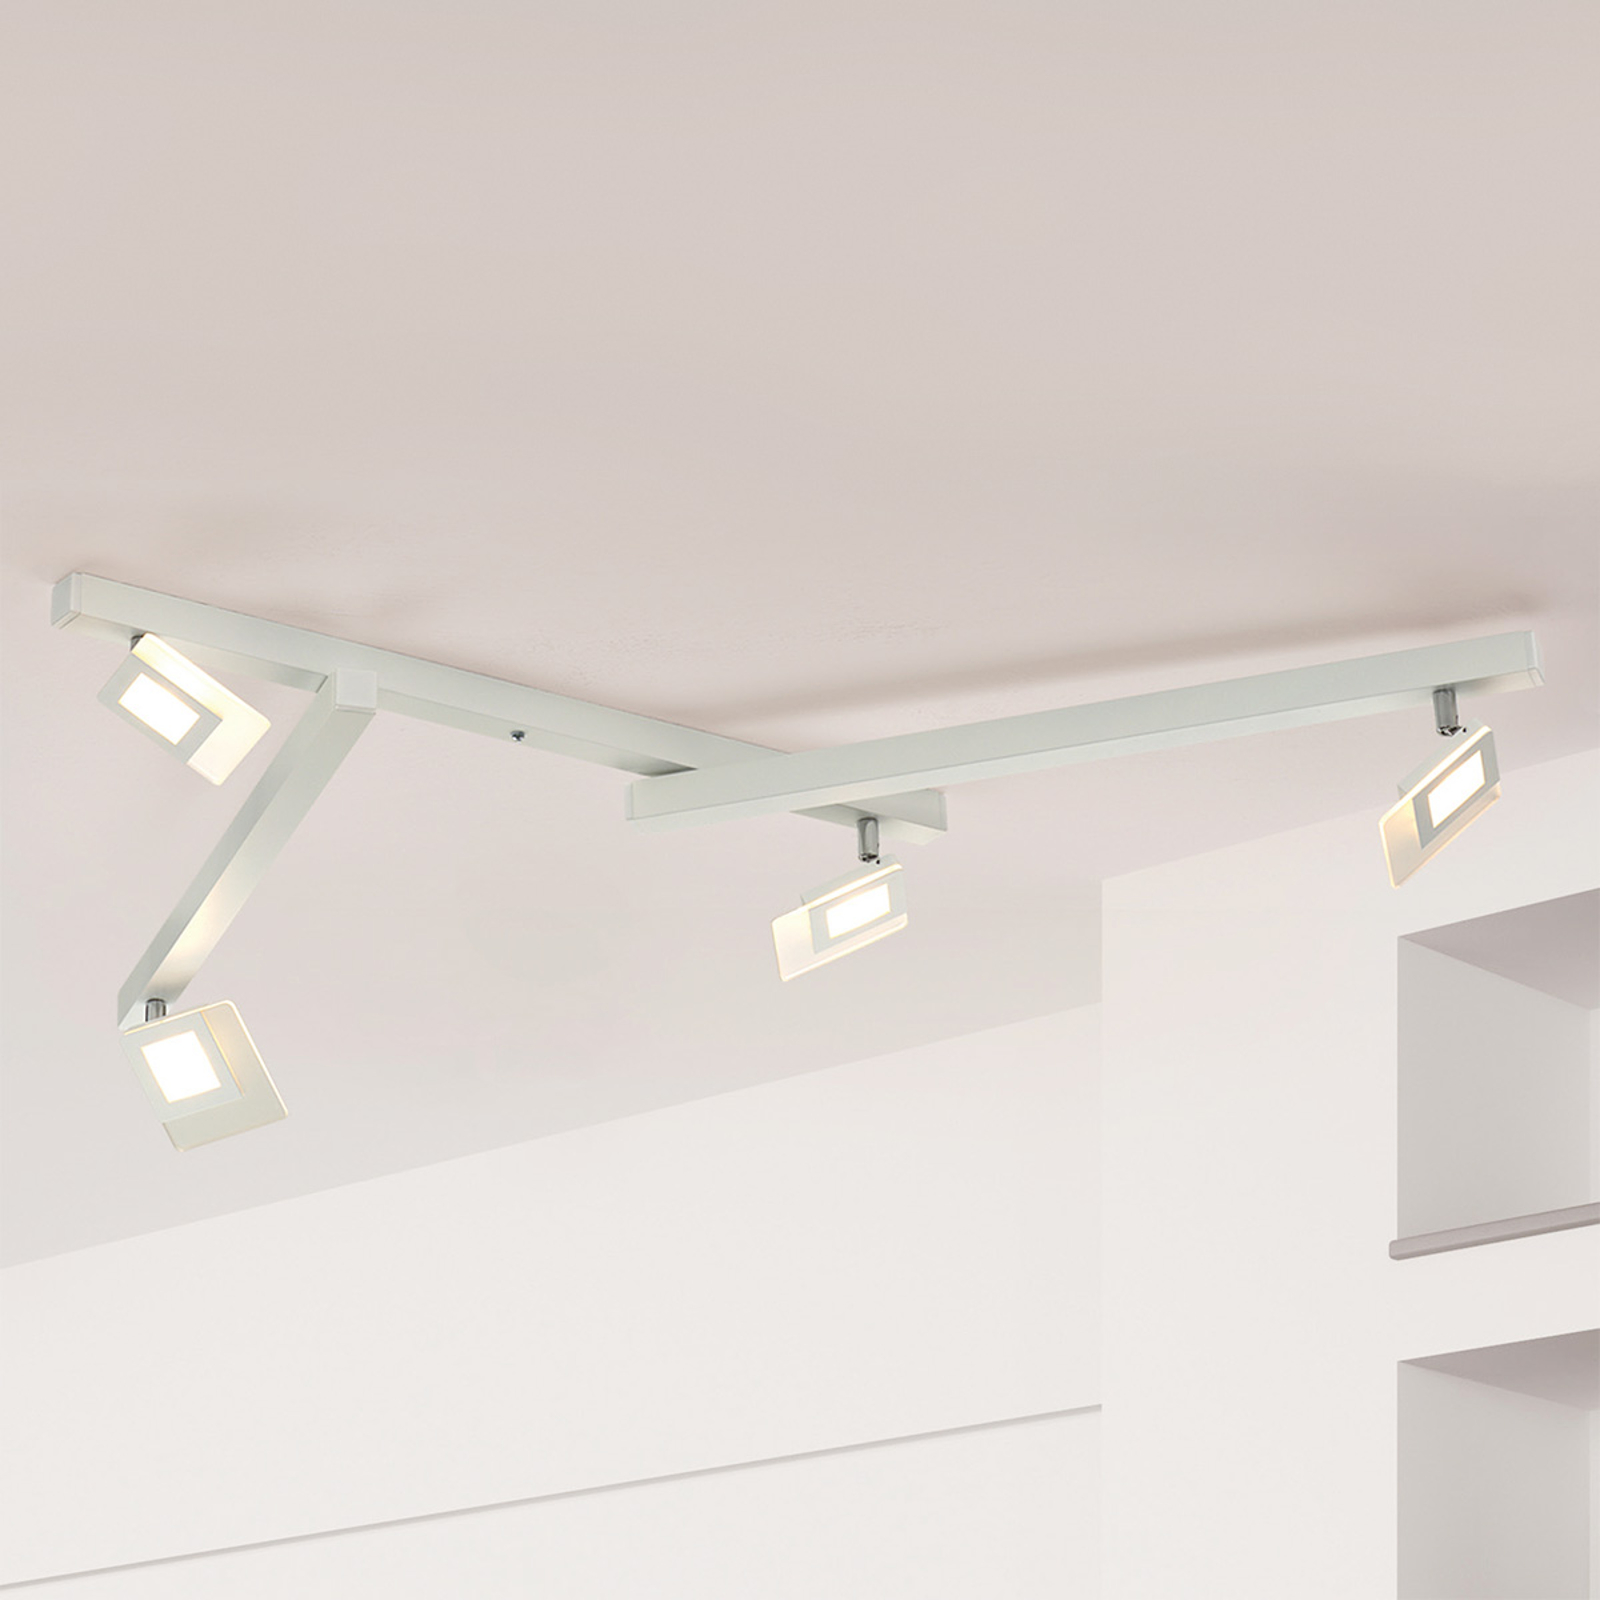 Vijflamps LED-plafondlamp Line in wit